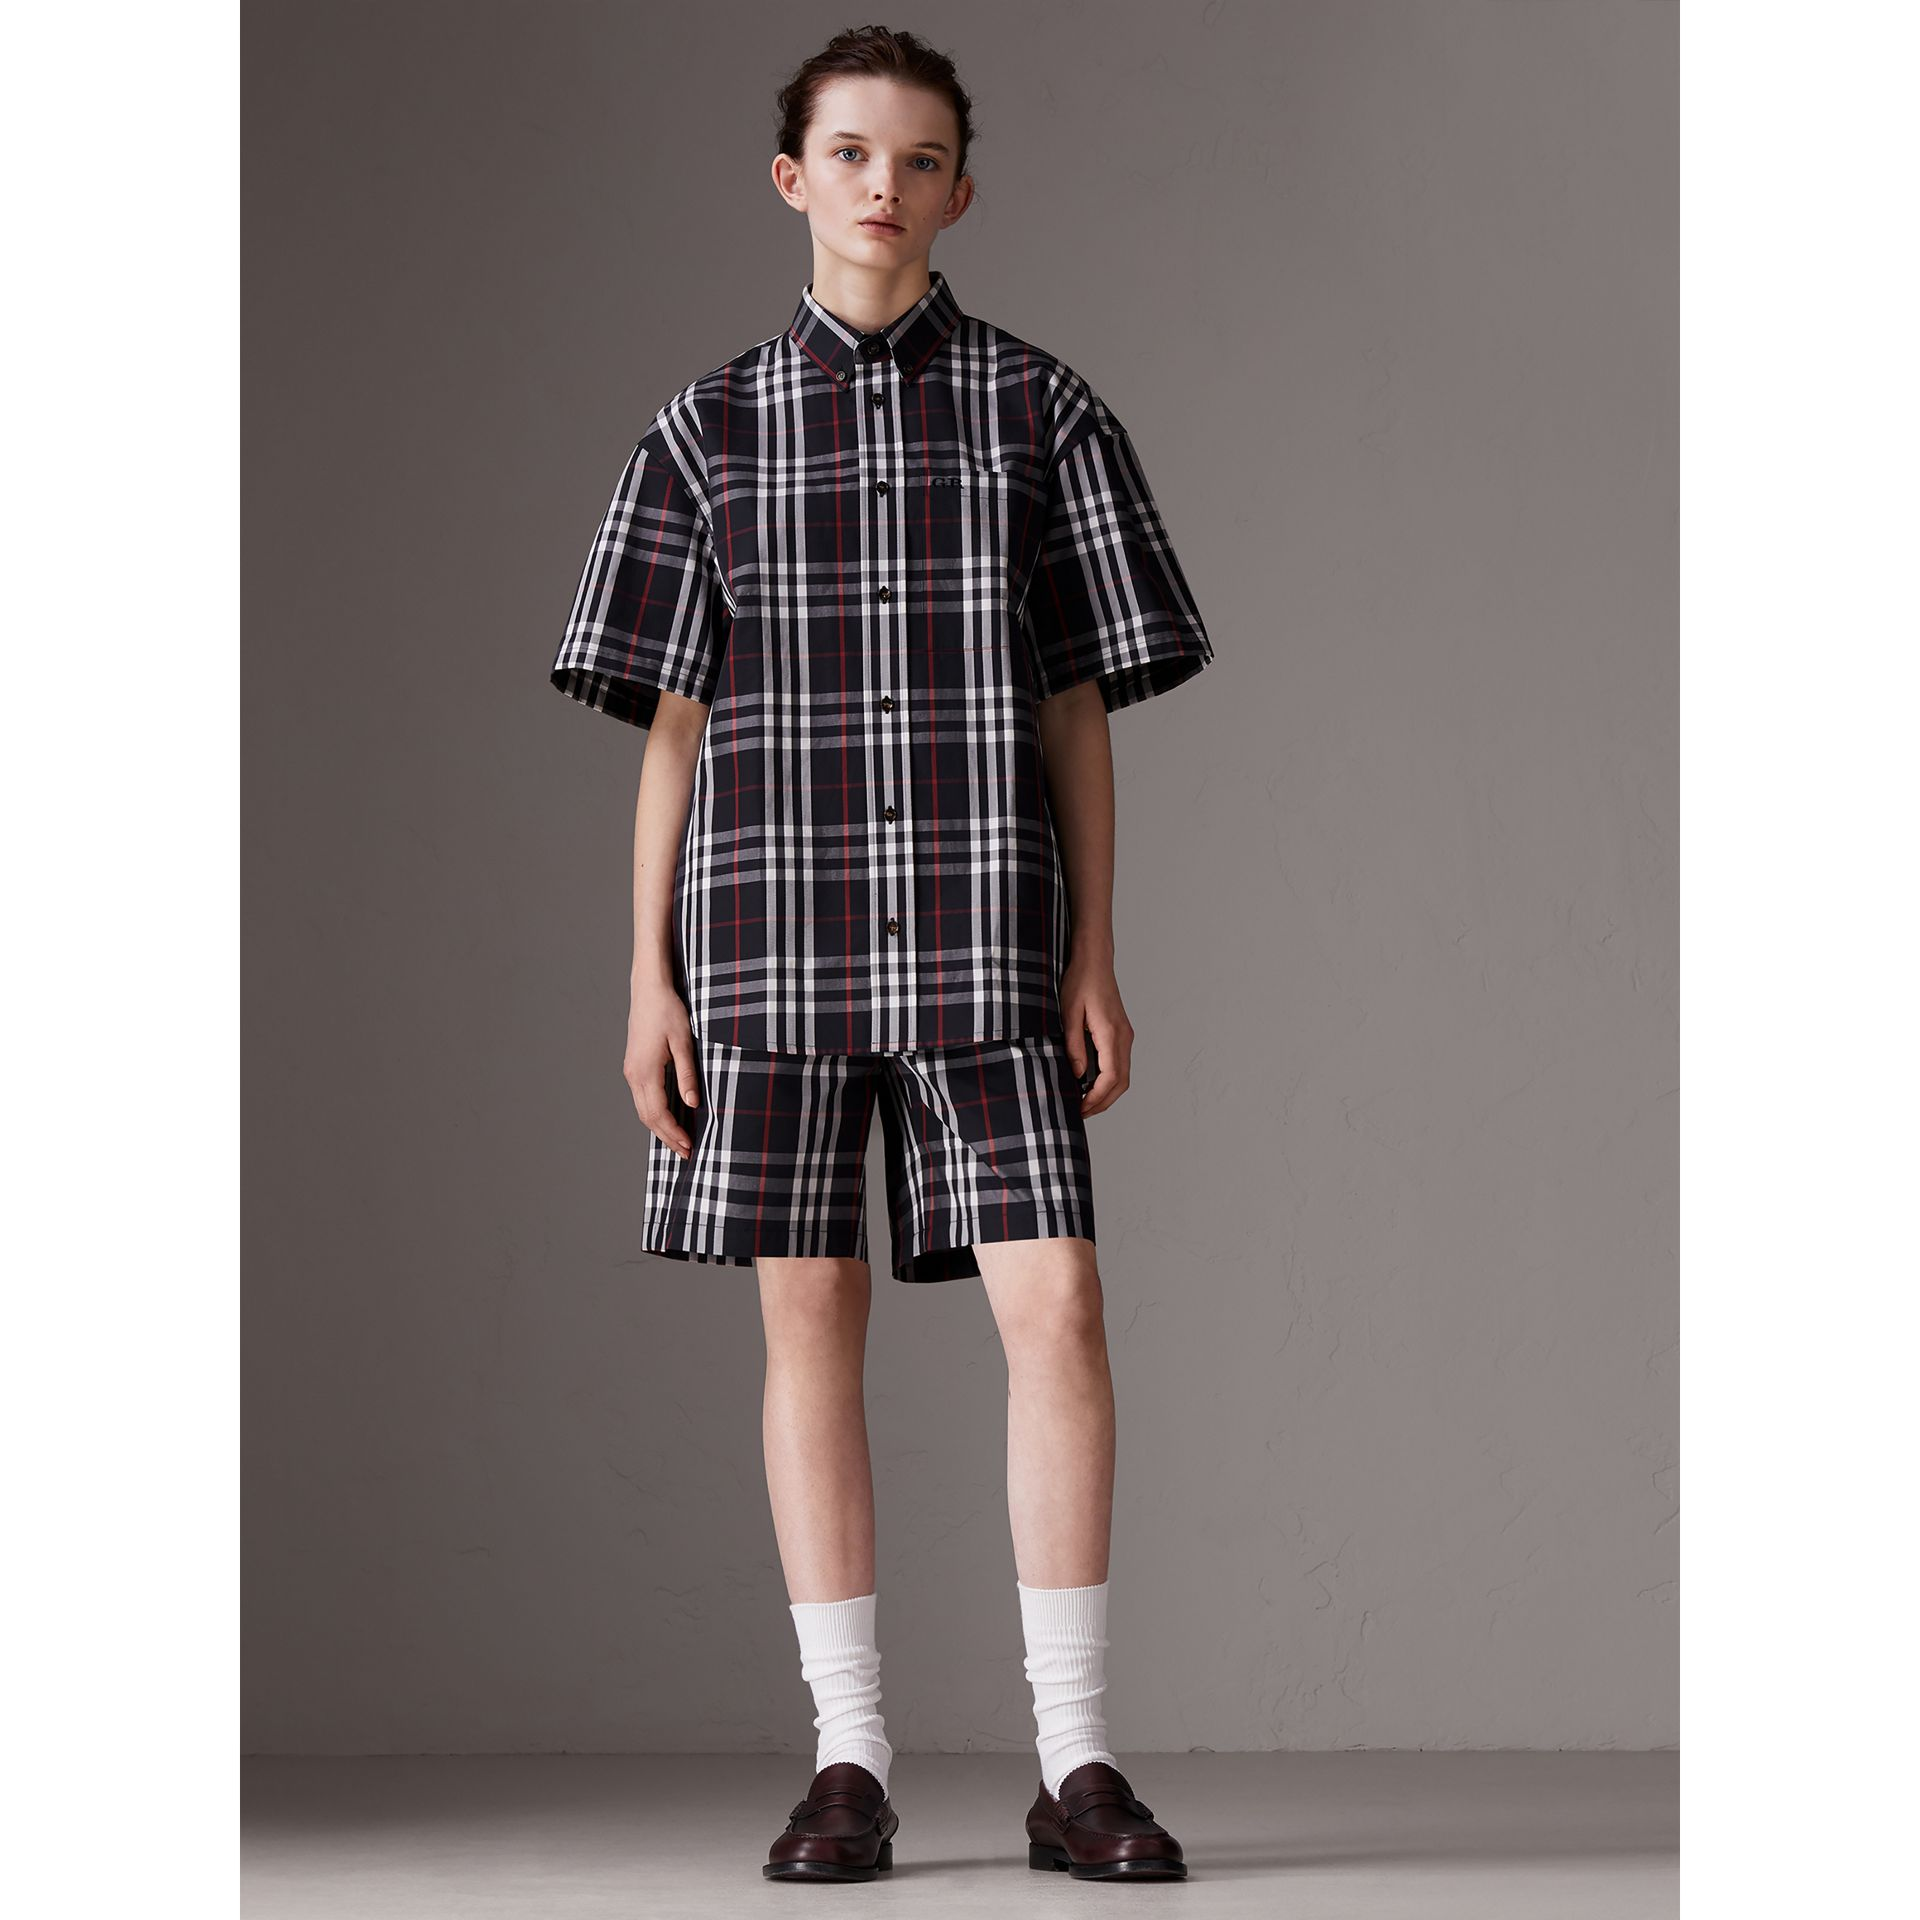 Gosha x Burberry Short-sleeve Check Shirt in Navy - Men | Burberry - gallery image 3